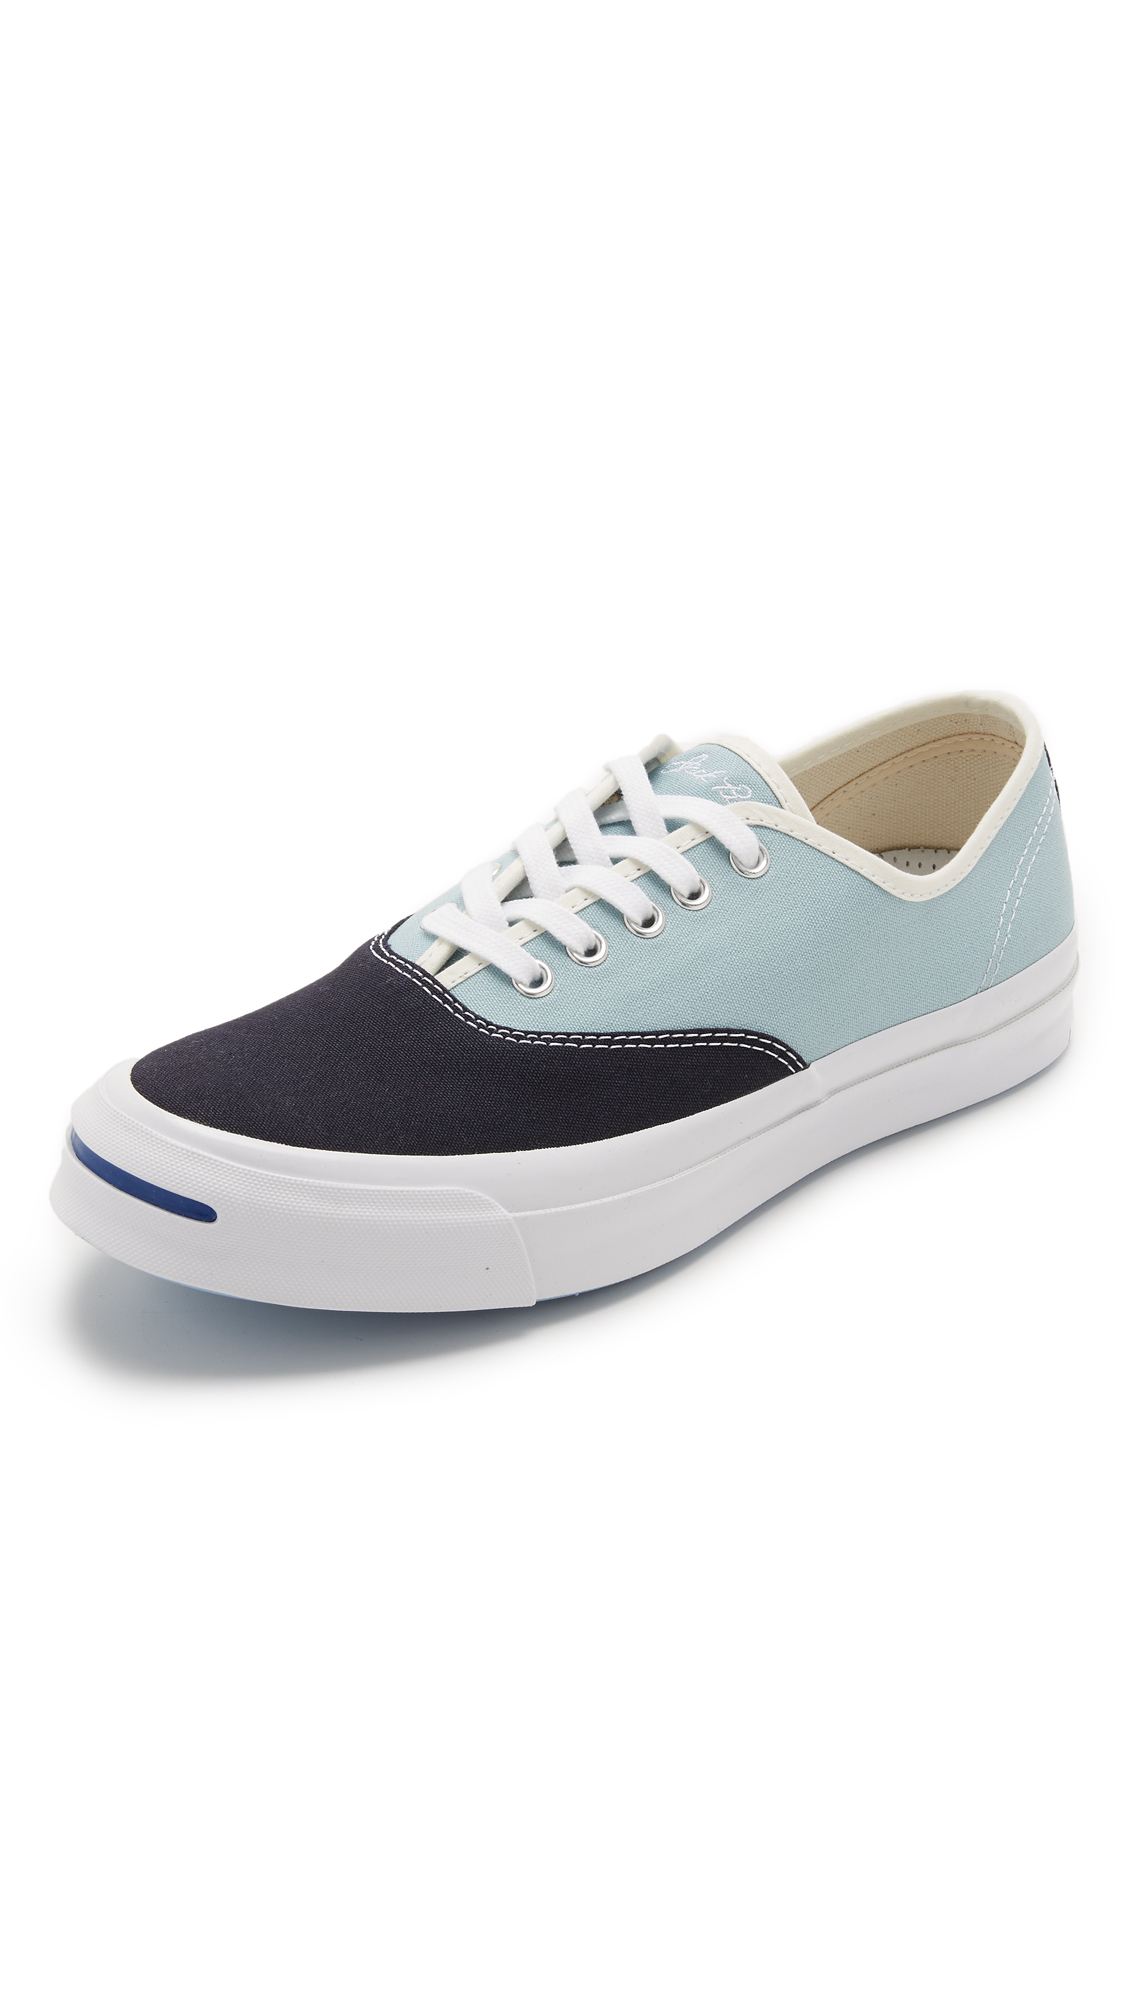 6eaf518a0f1d Converse Jack Purcell Signature CVO Sneakers